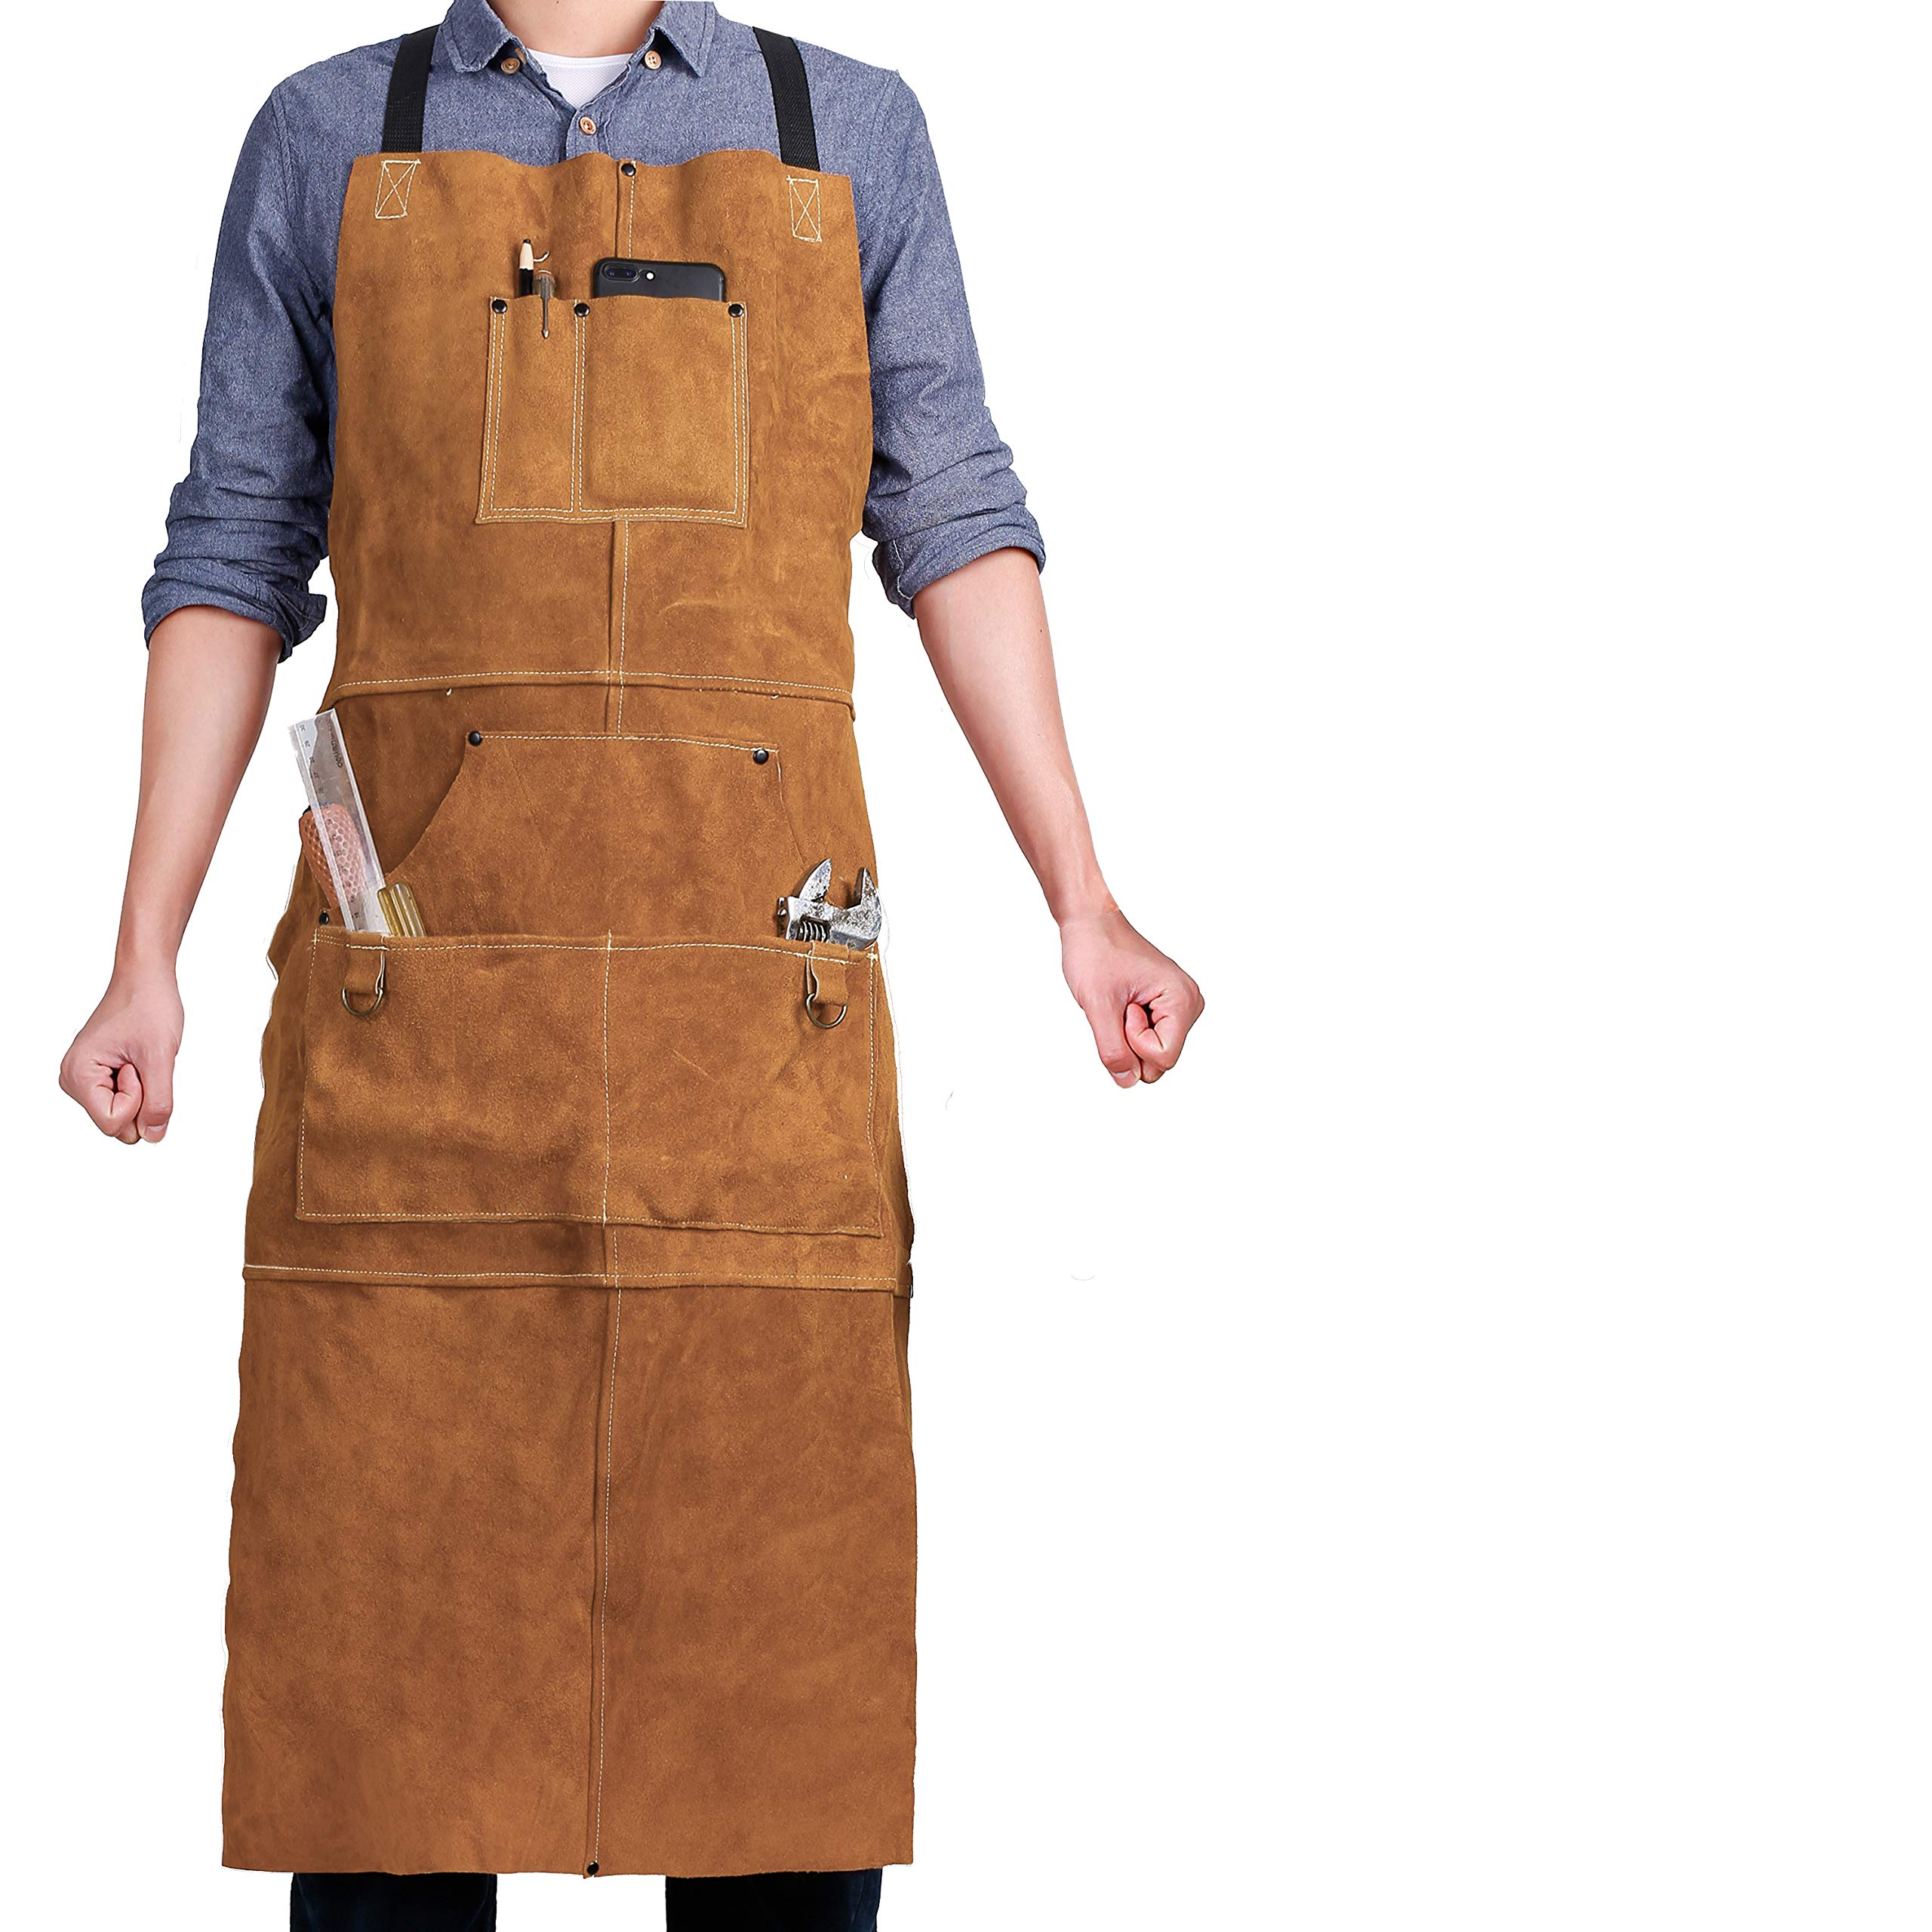 QeeLink Leather Welding Apron - Heat & Flame-Resistant Heavy Duty Work Apron with 6 Pockets, 42'' Extra Large & Cross Back Extra Long Strap, Adjustable M to XXXL Aprons for Men & Women (Brown) by QeeLink (Image #2)